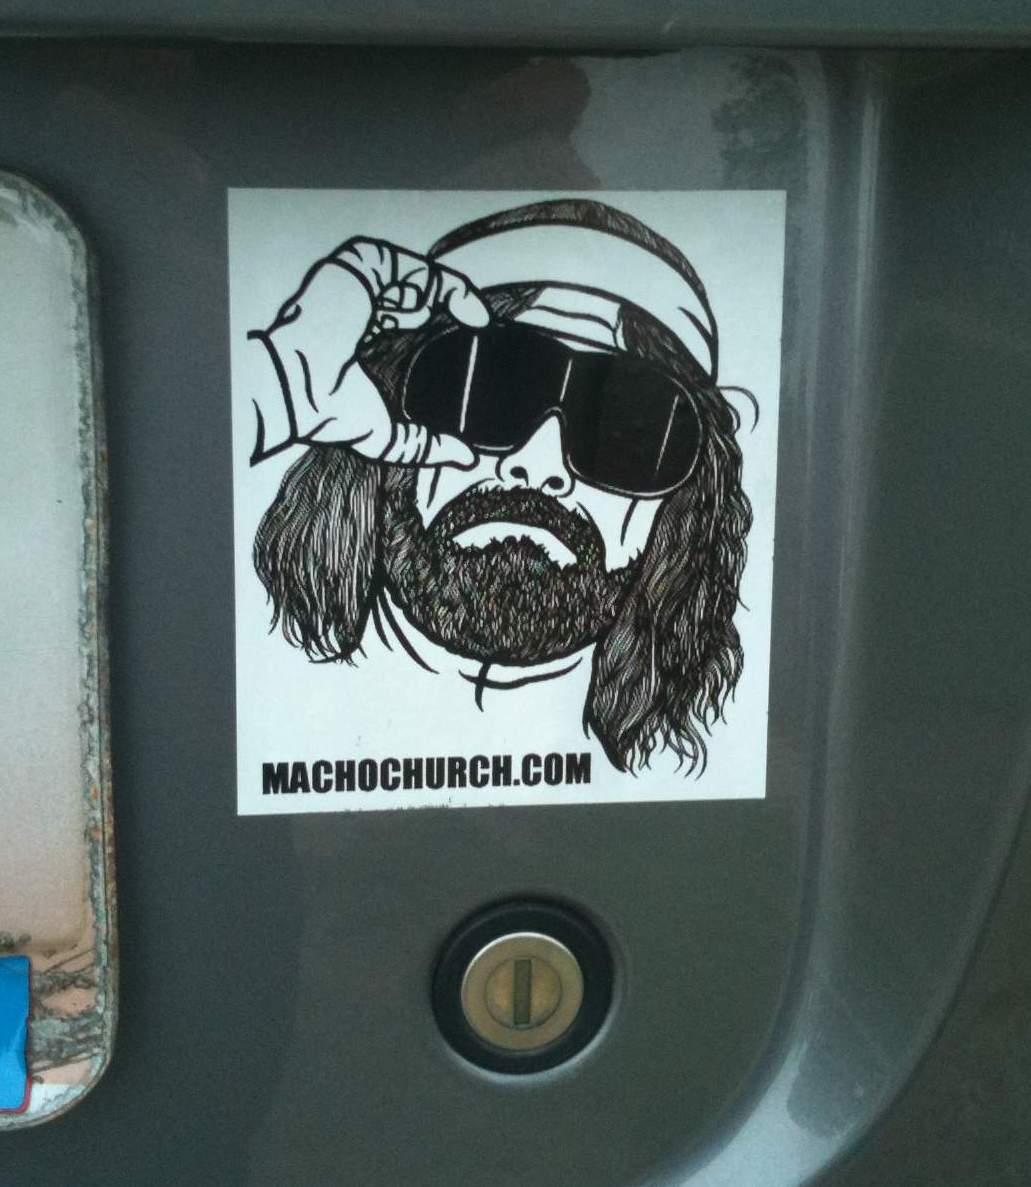 Bumper sticker design template - Macho Church Bumper Stickers Have Arrived Order Yours Today